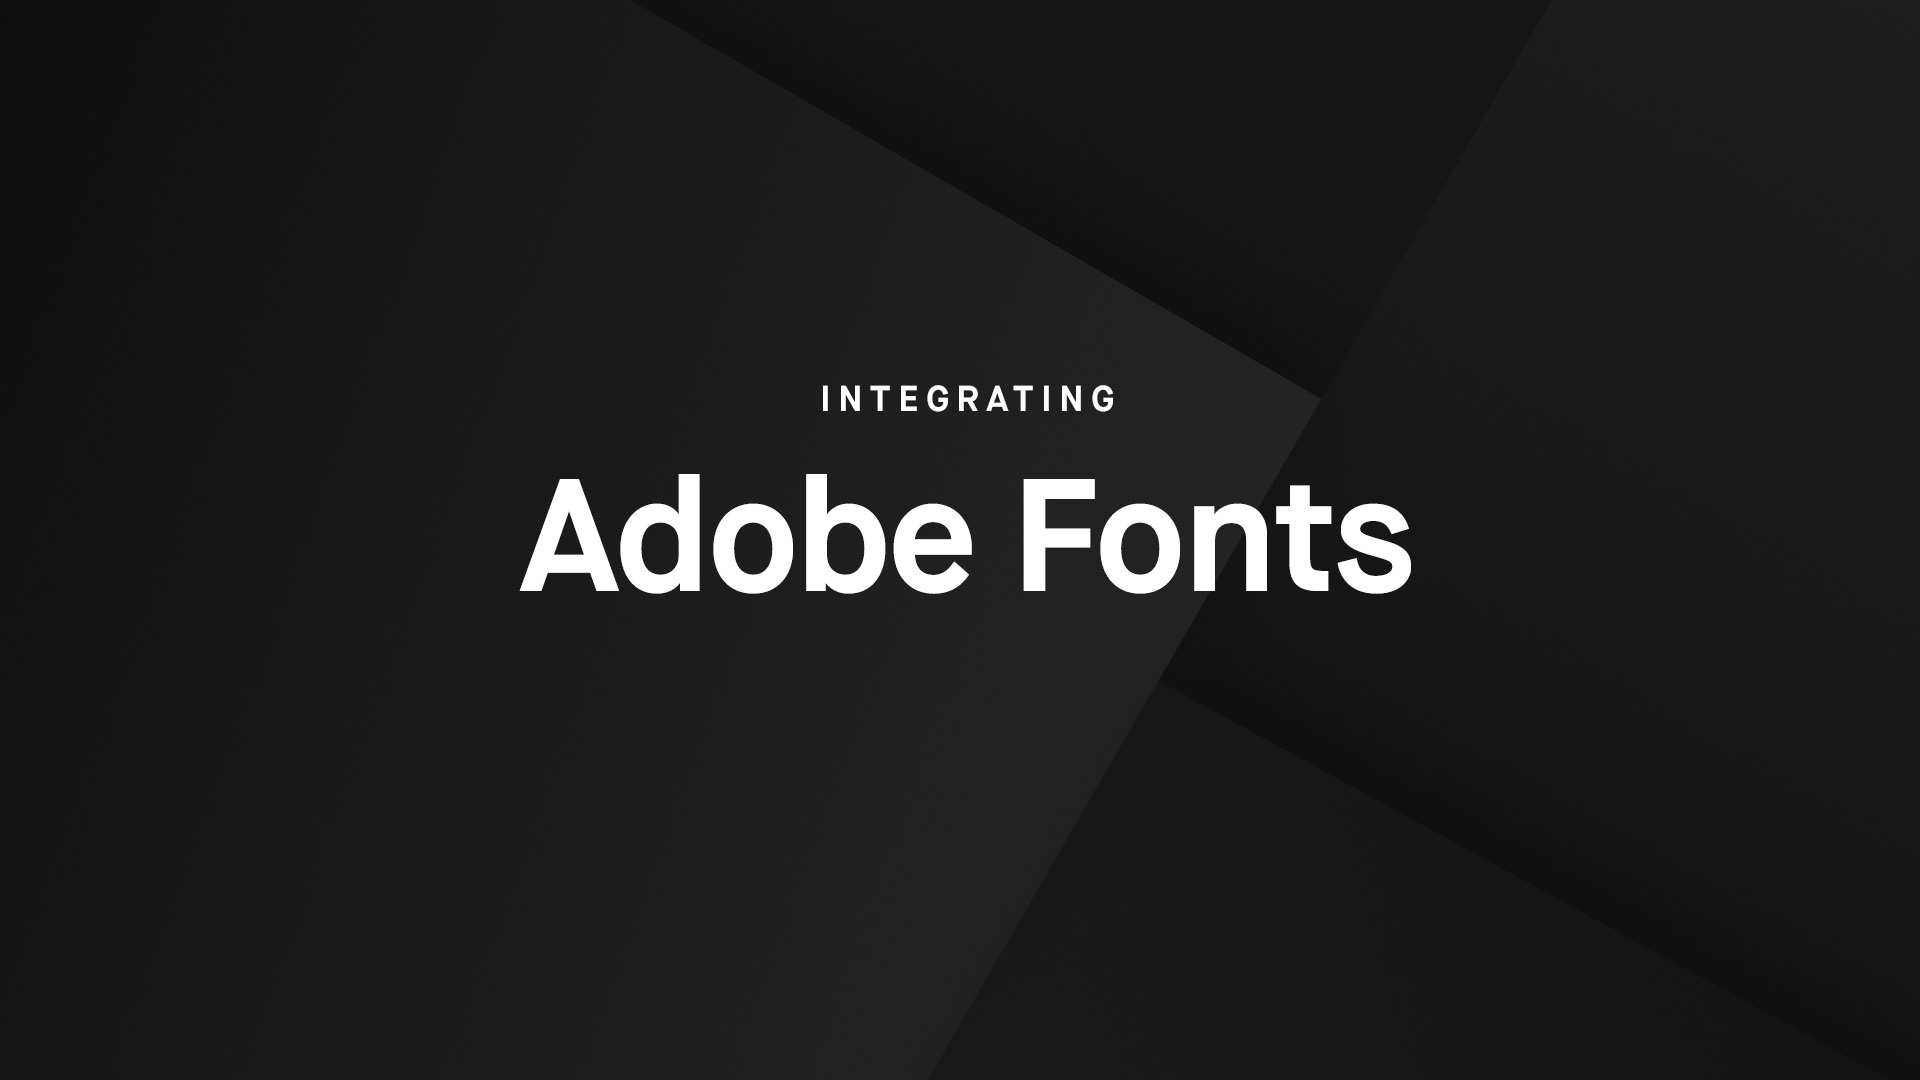 integrating-adobe-fonts-semplice